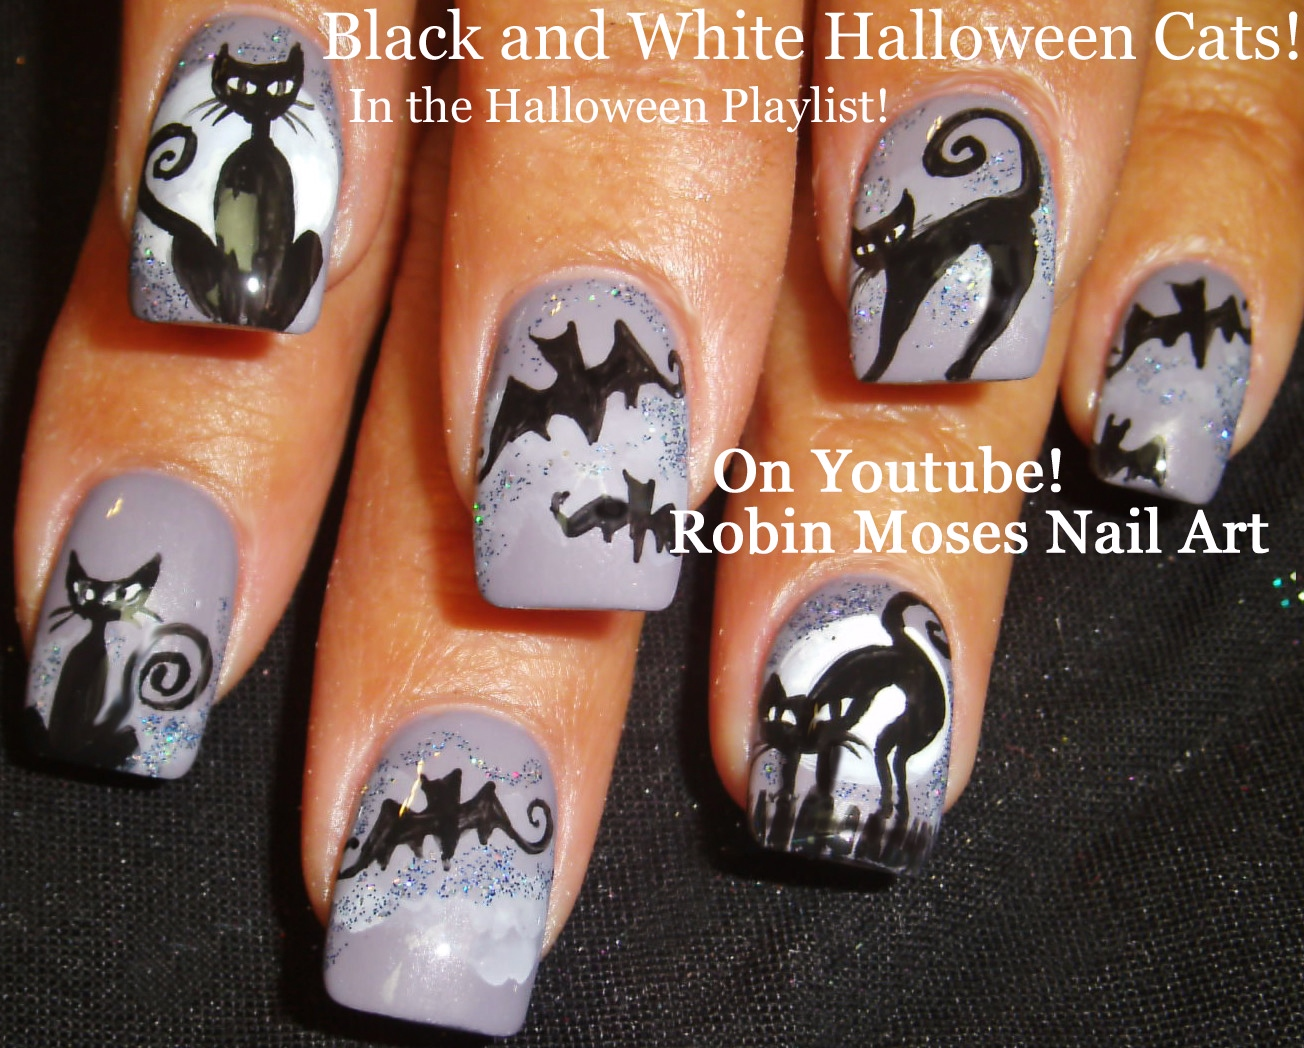 Robin Moses Nail Art: American Horror Story Coven Nails ...